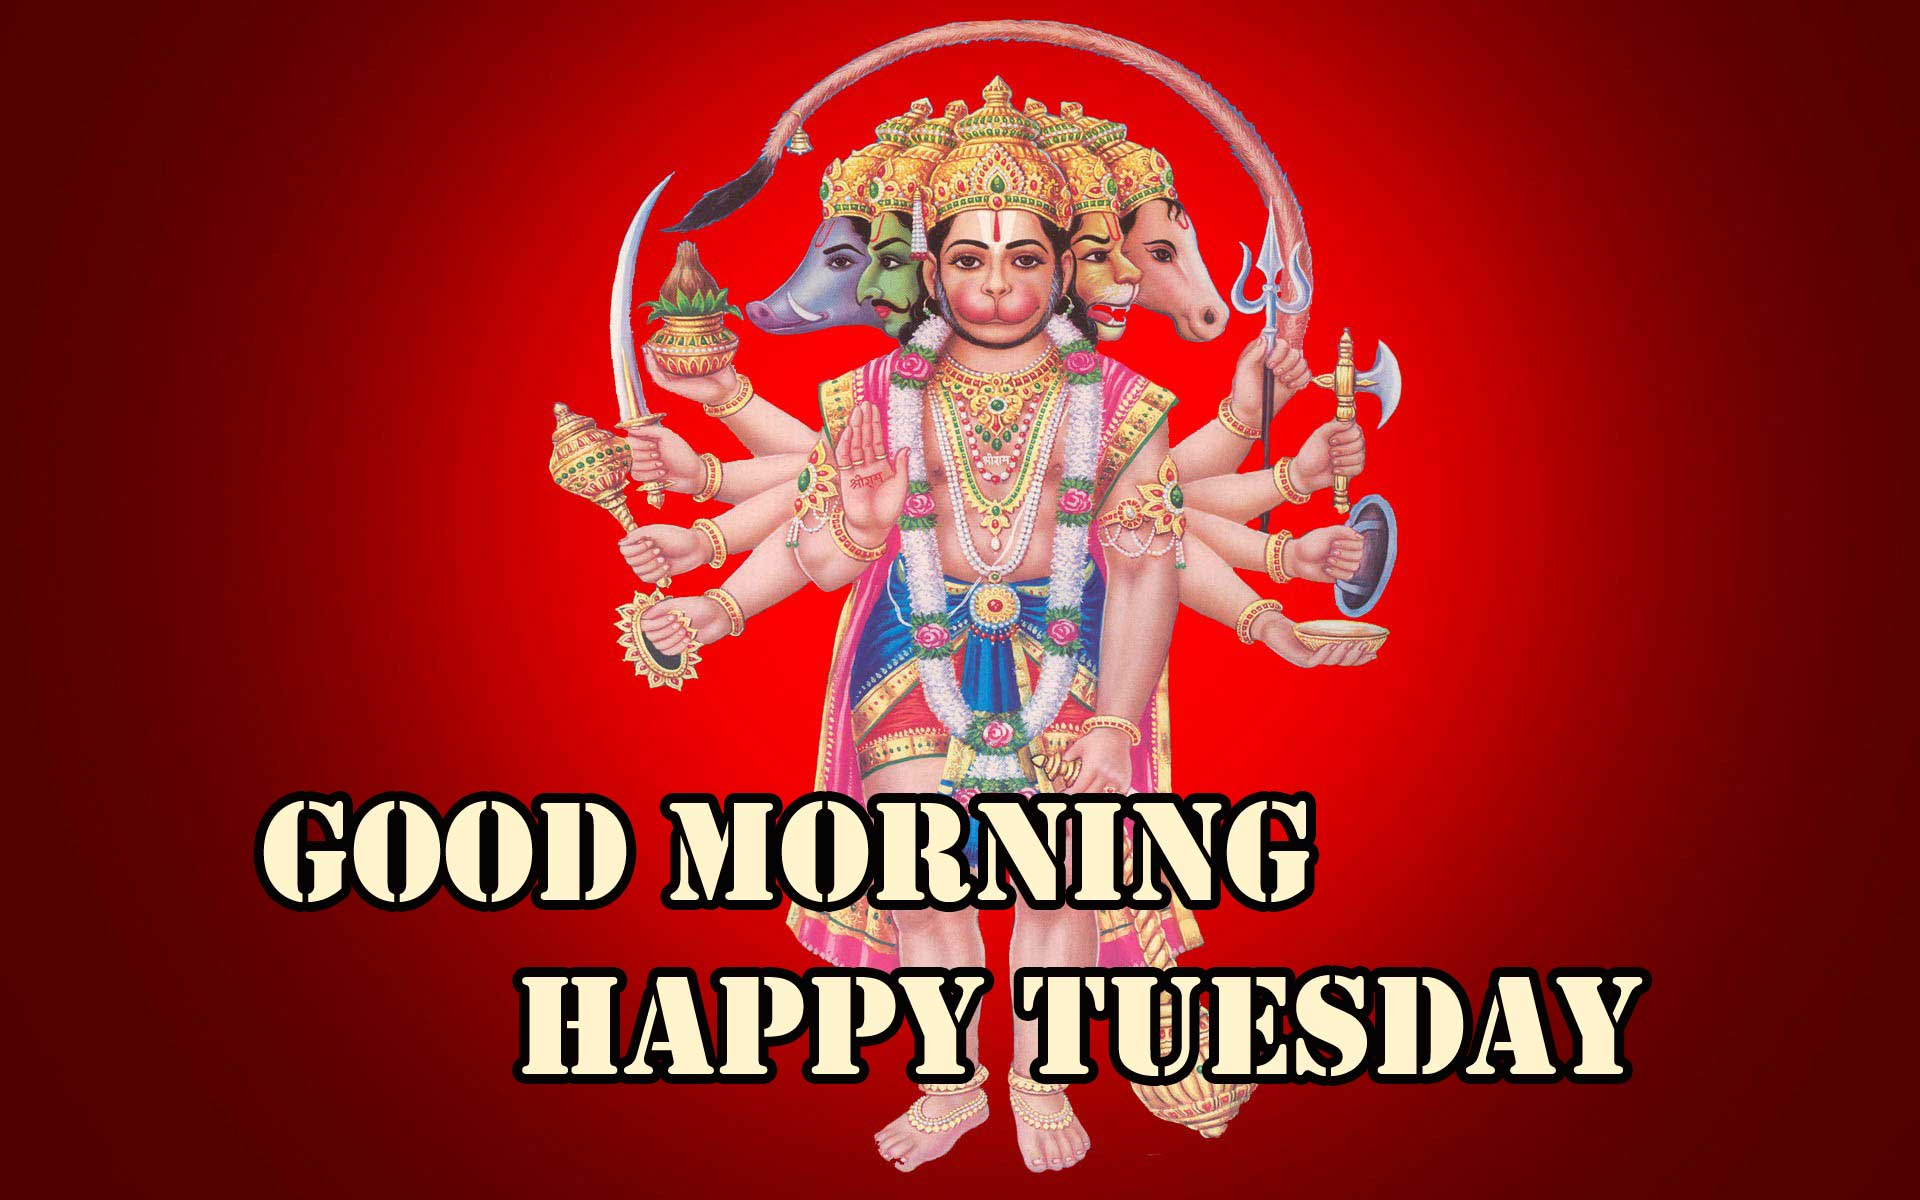 547+ Dear Friend Download Tuesday Good Morning Images { Best }